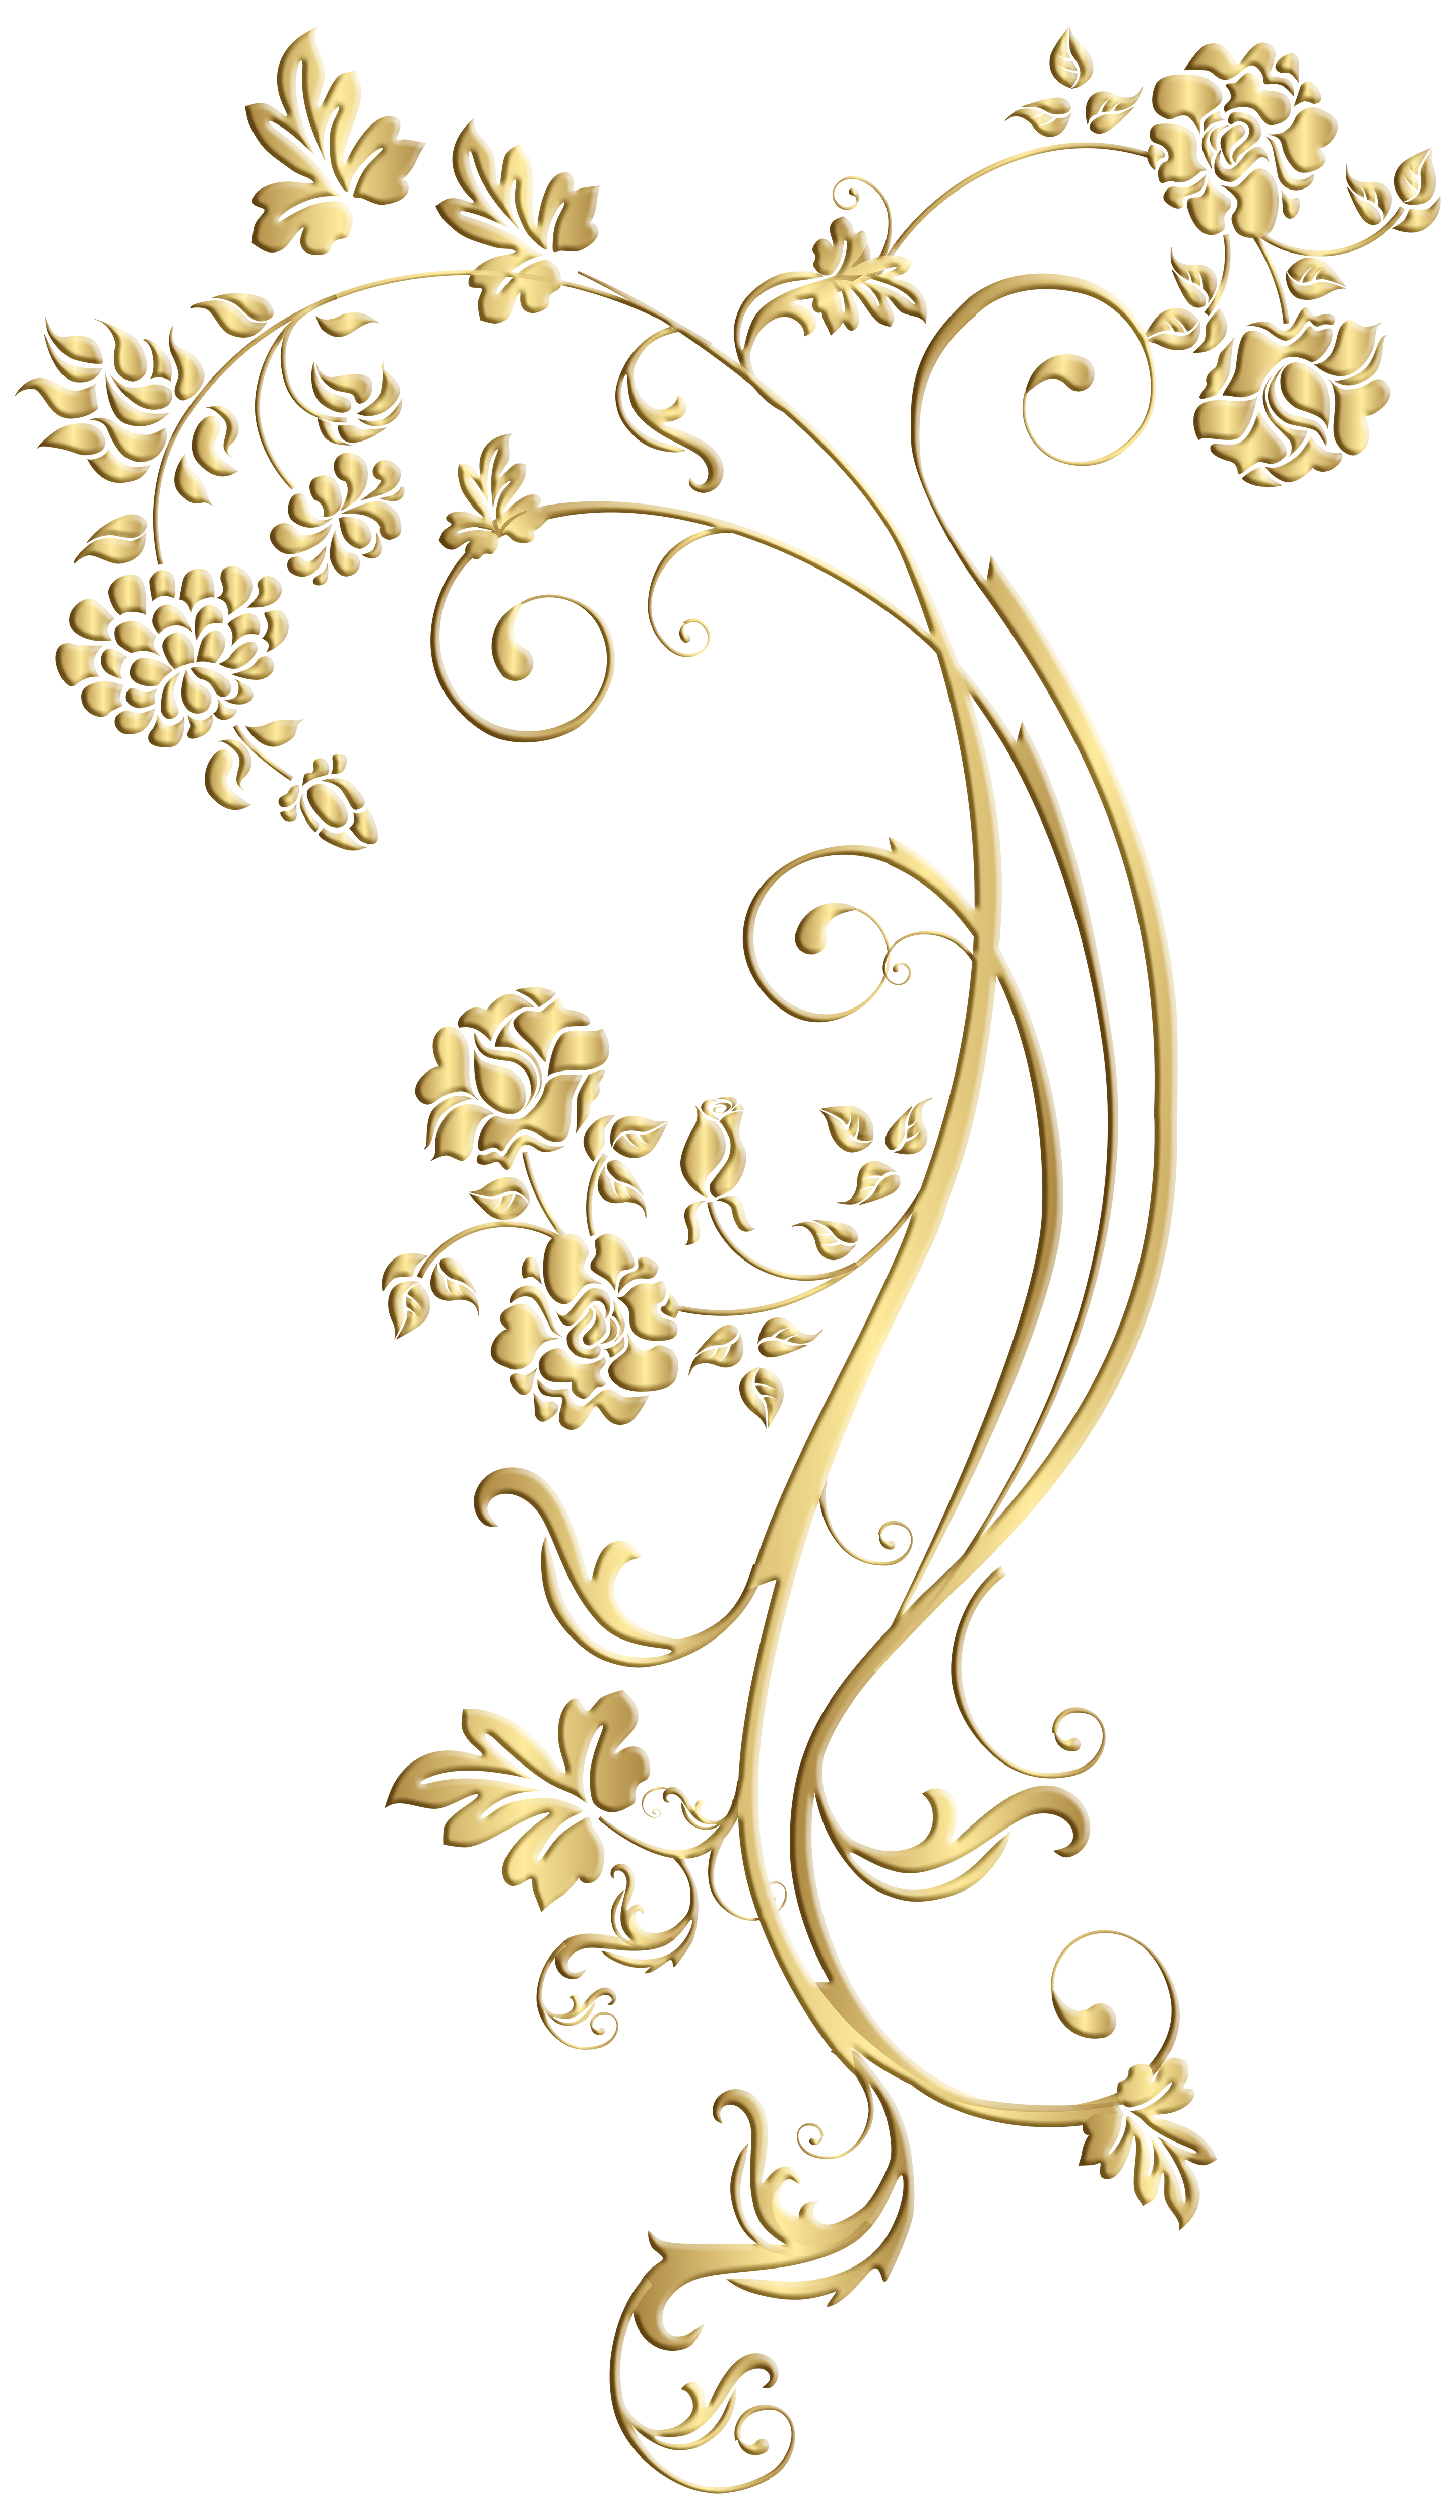 Gold Floral Ornament Frame Clip Art Image Gallery Yopriceville High Quality Images And Transparent Png Fre Ornament Frame Digital Flowers Baroque Ornament